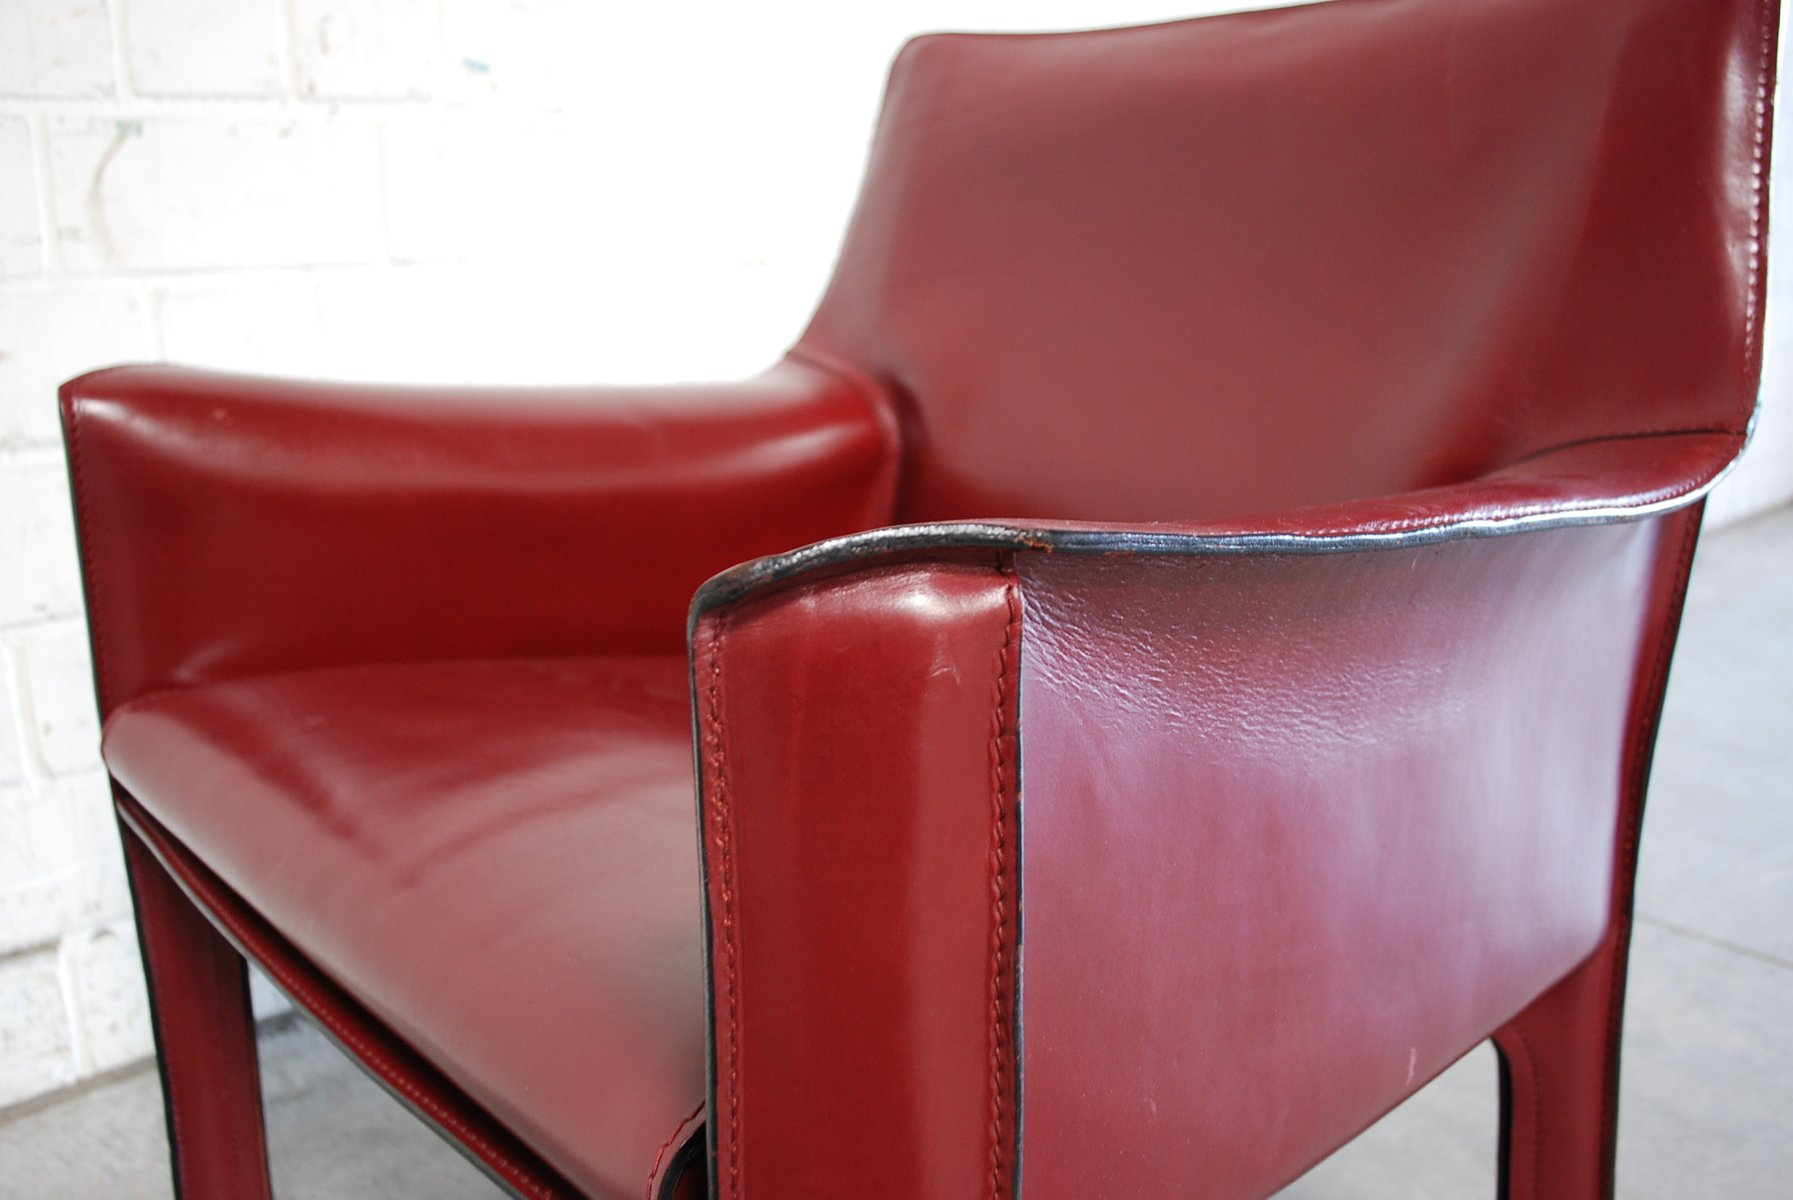 Bordeaux Red Cab 414 Lounge Chair by Mario Bellini for Cassina for